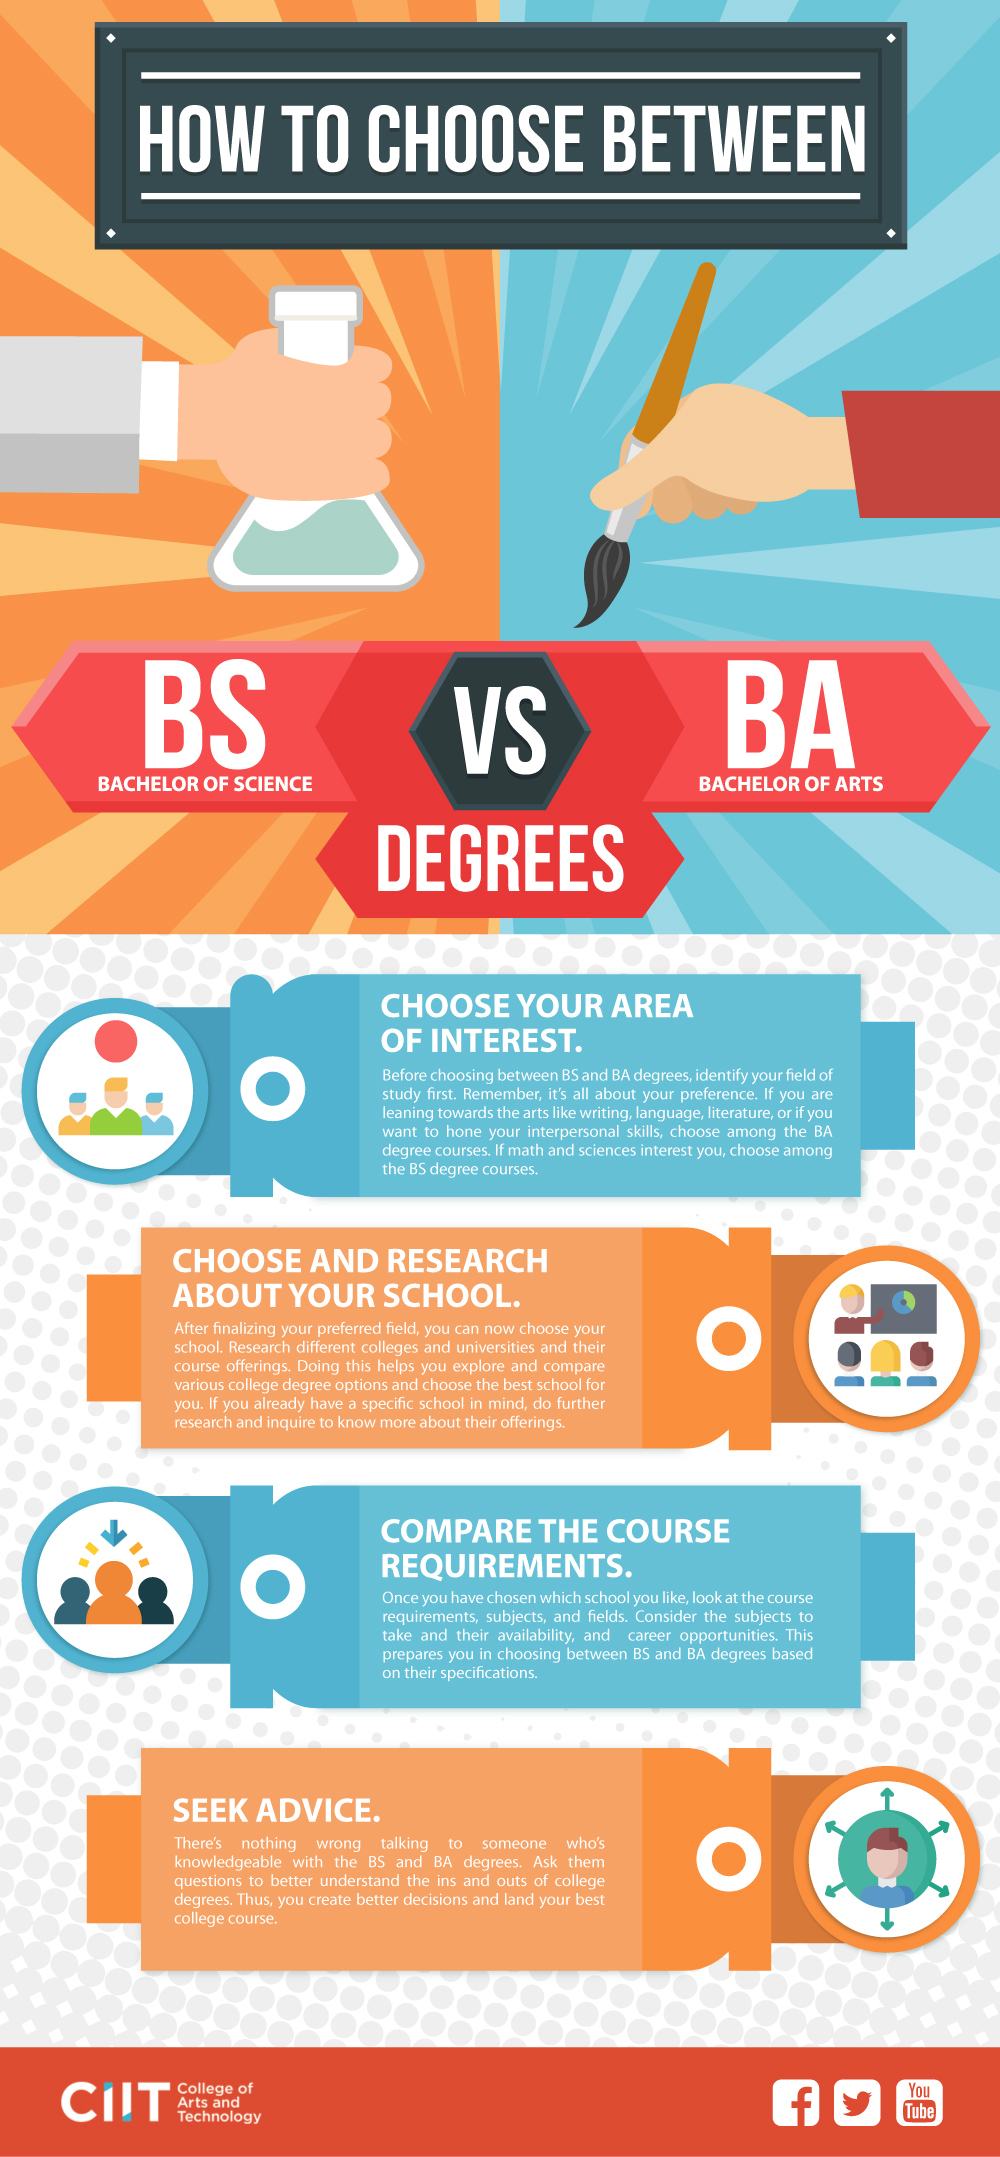 BS vs BA: Choosing Between the Two